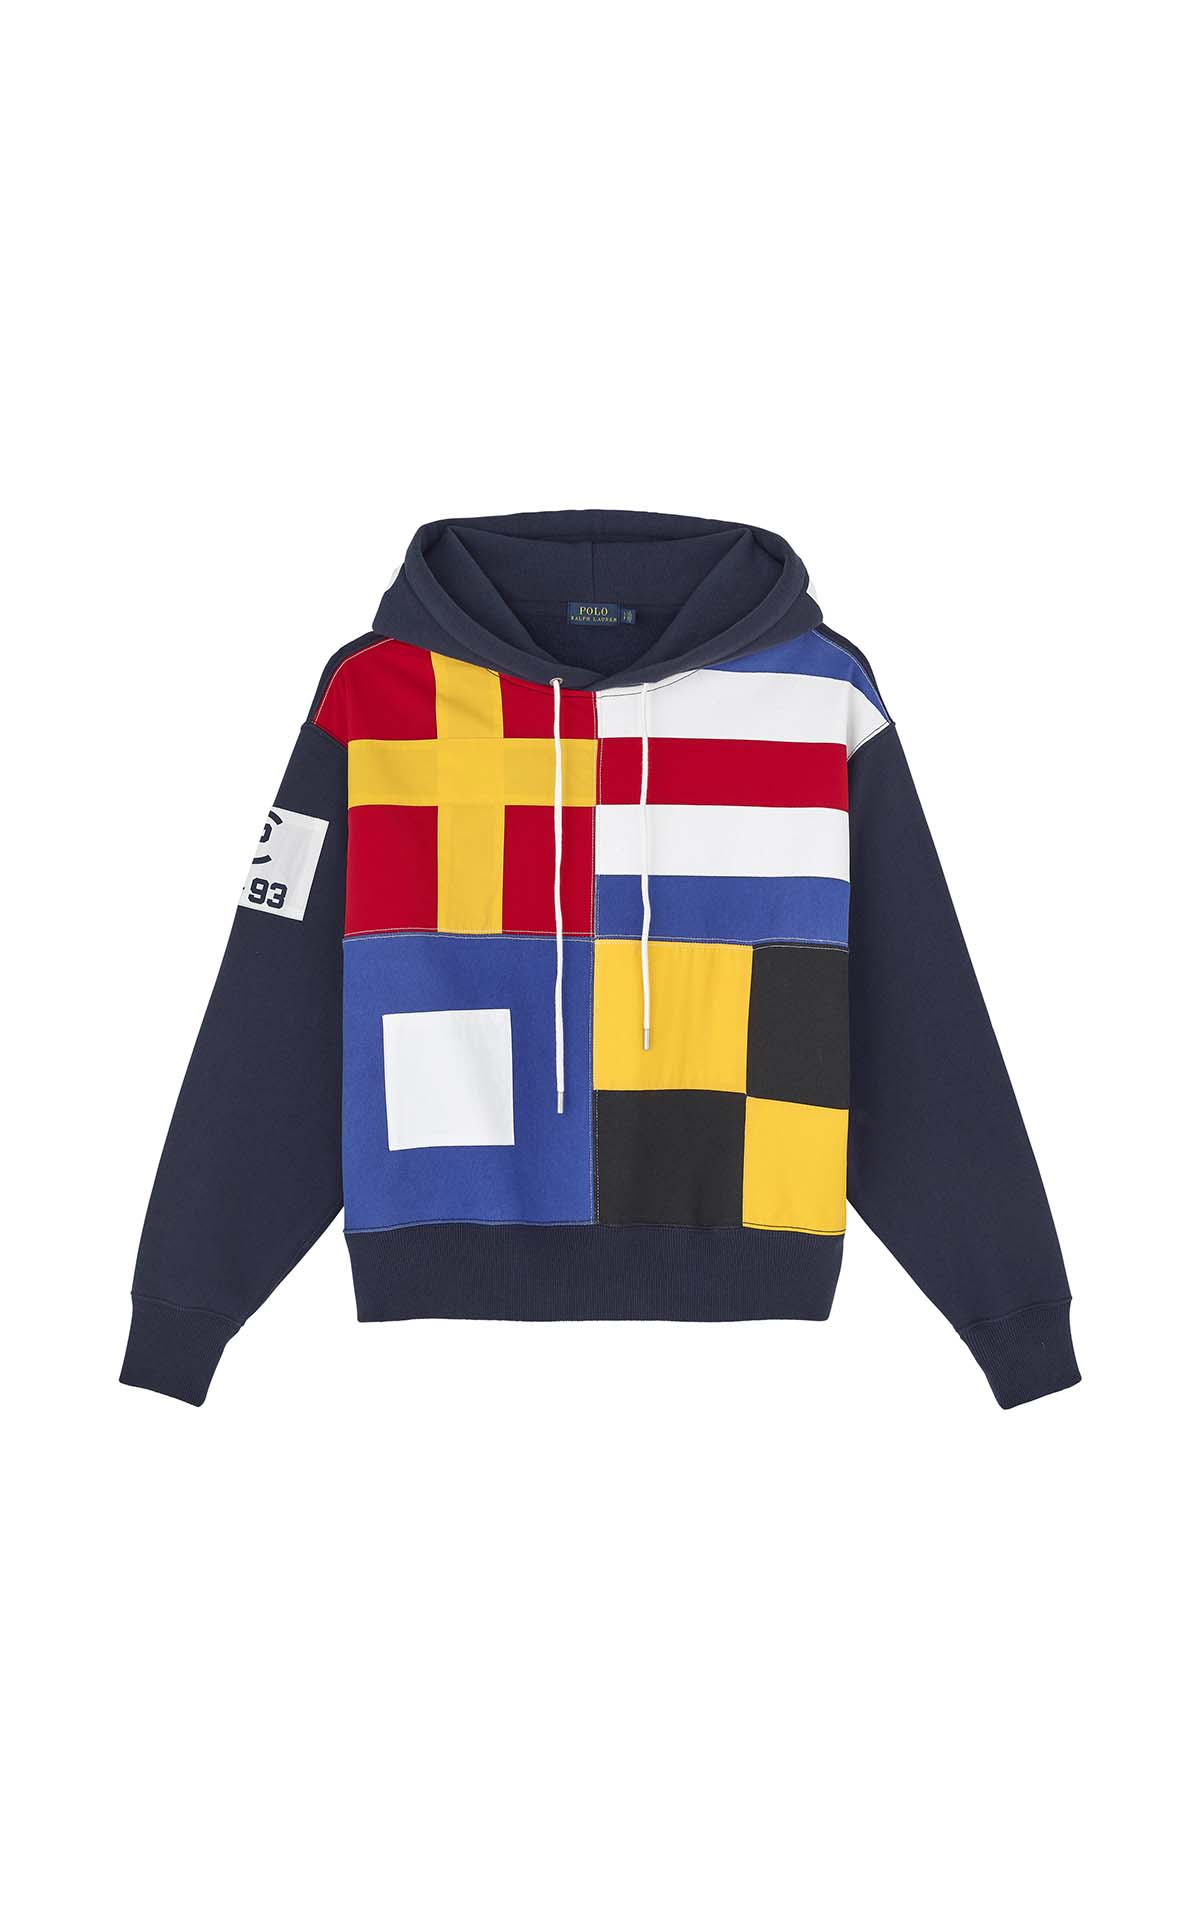 Polo Ralph Lauren Nautical flag hoodie at The Bicester Village Shopping Collection